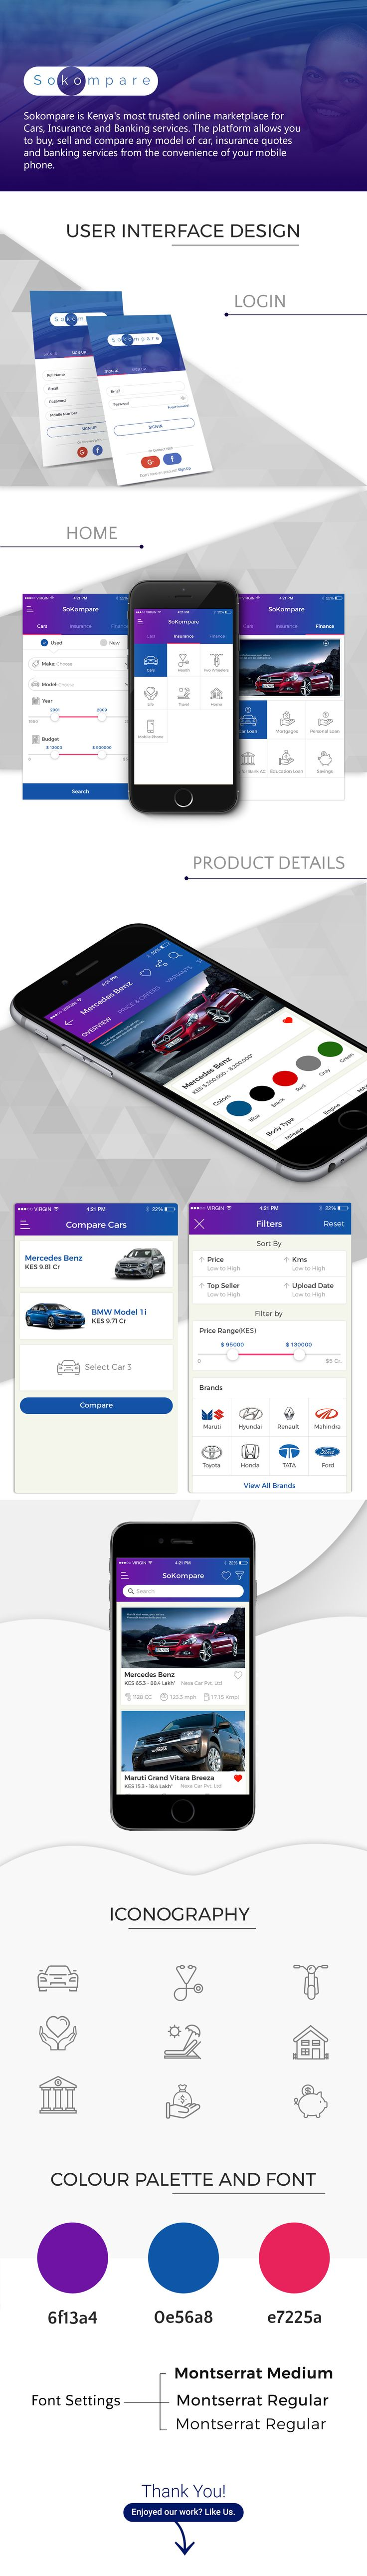 Howdy, Now we are presenting #Sokompareapp which is more trusted online marketplace for Cars, Insurance and Banking services. The platform of sokompare allows you to buy, sell and compare any model of car, insurance quotes and banking services from the convenience of your #mobilephone. So every quotation is now on your finger tips.